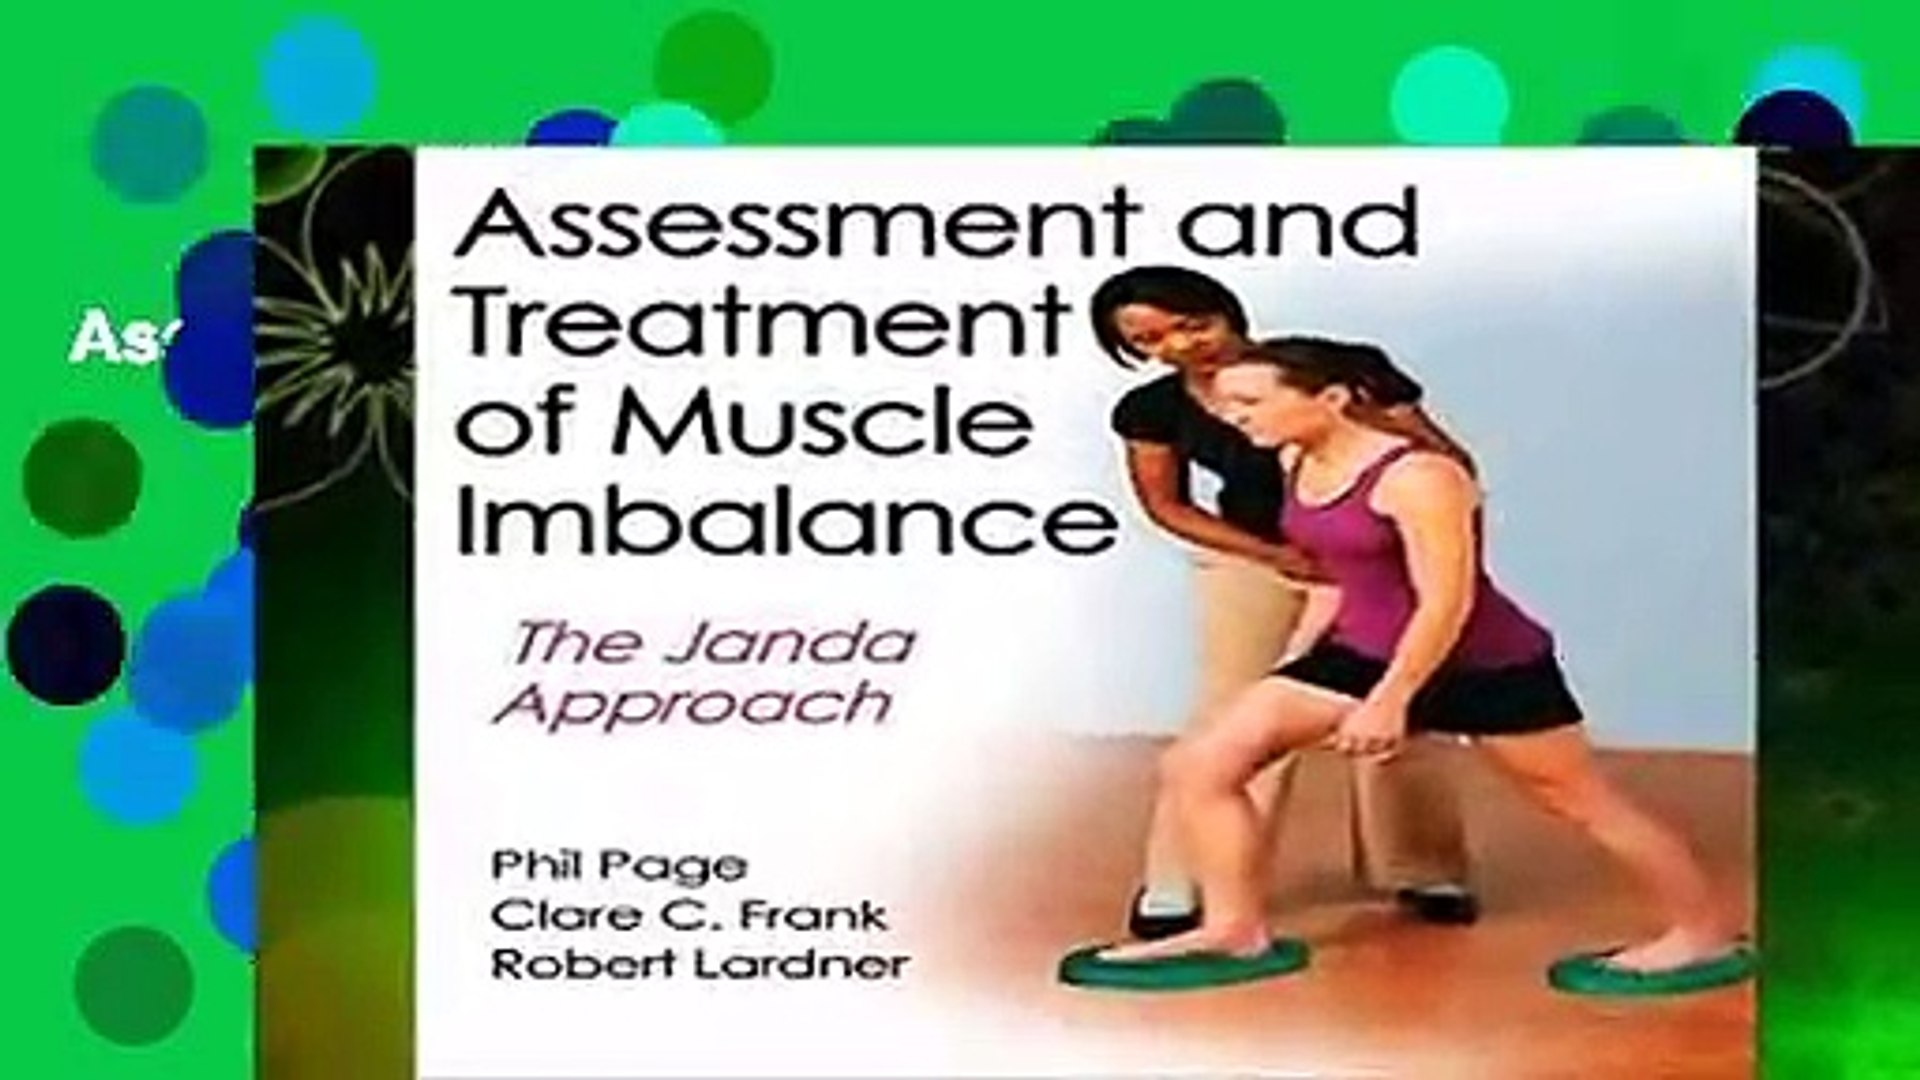 Assessment And Treatment Of Muscle Imbalance Video Dailymotion